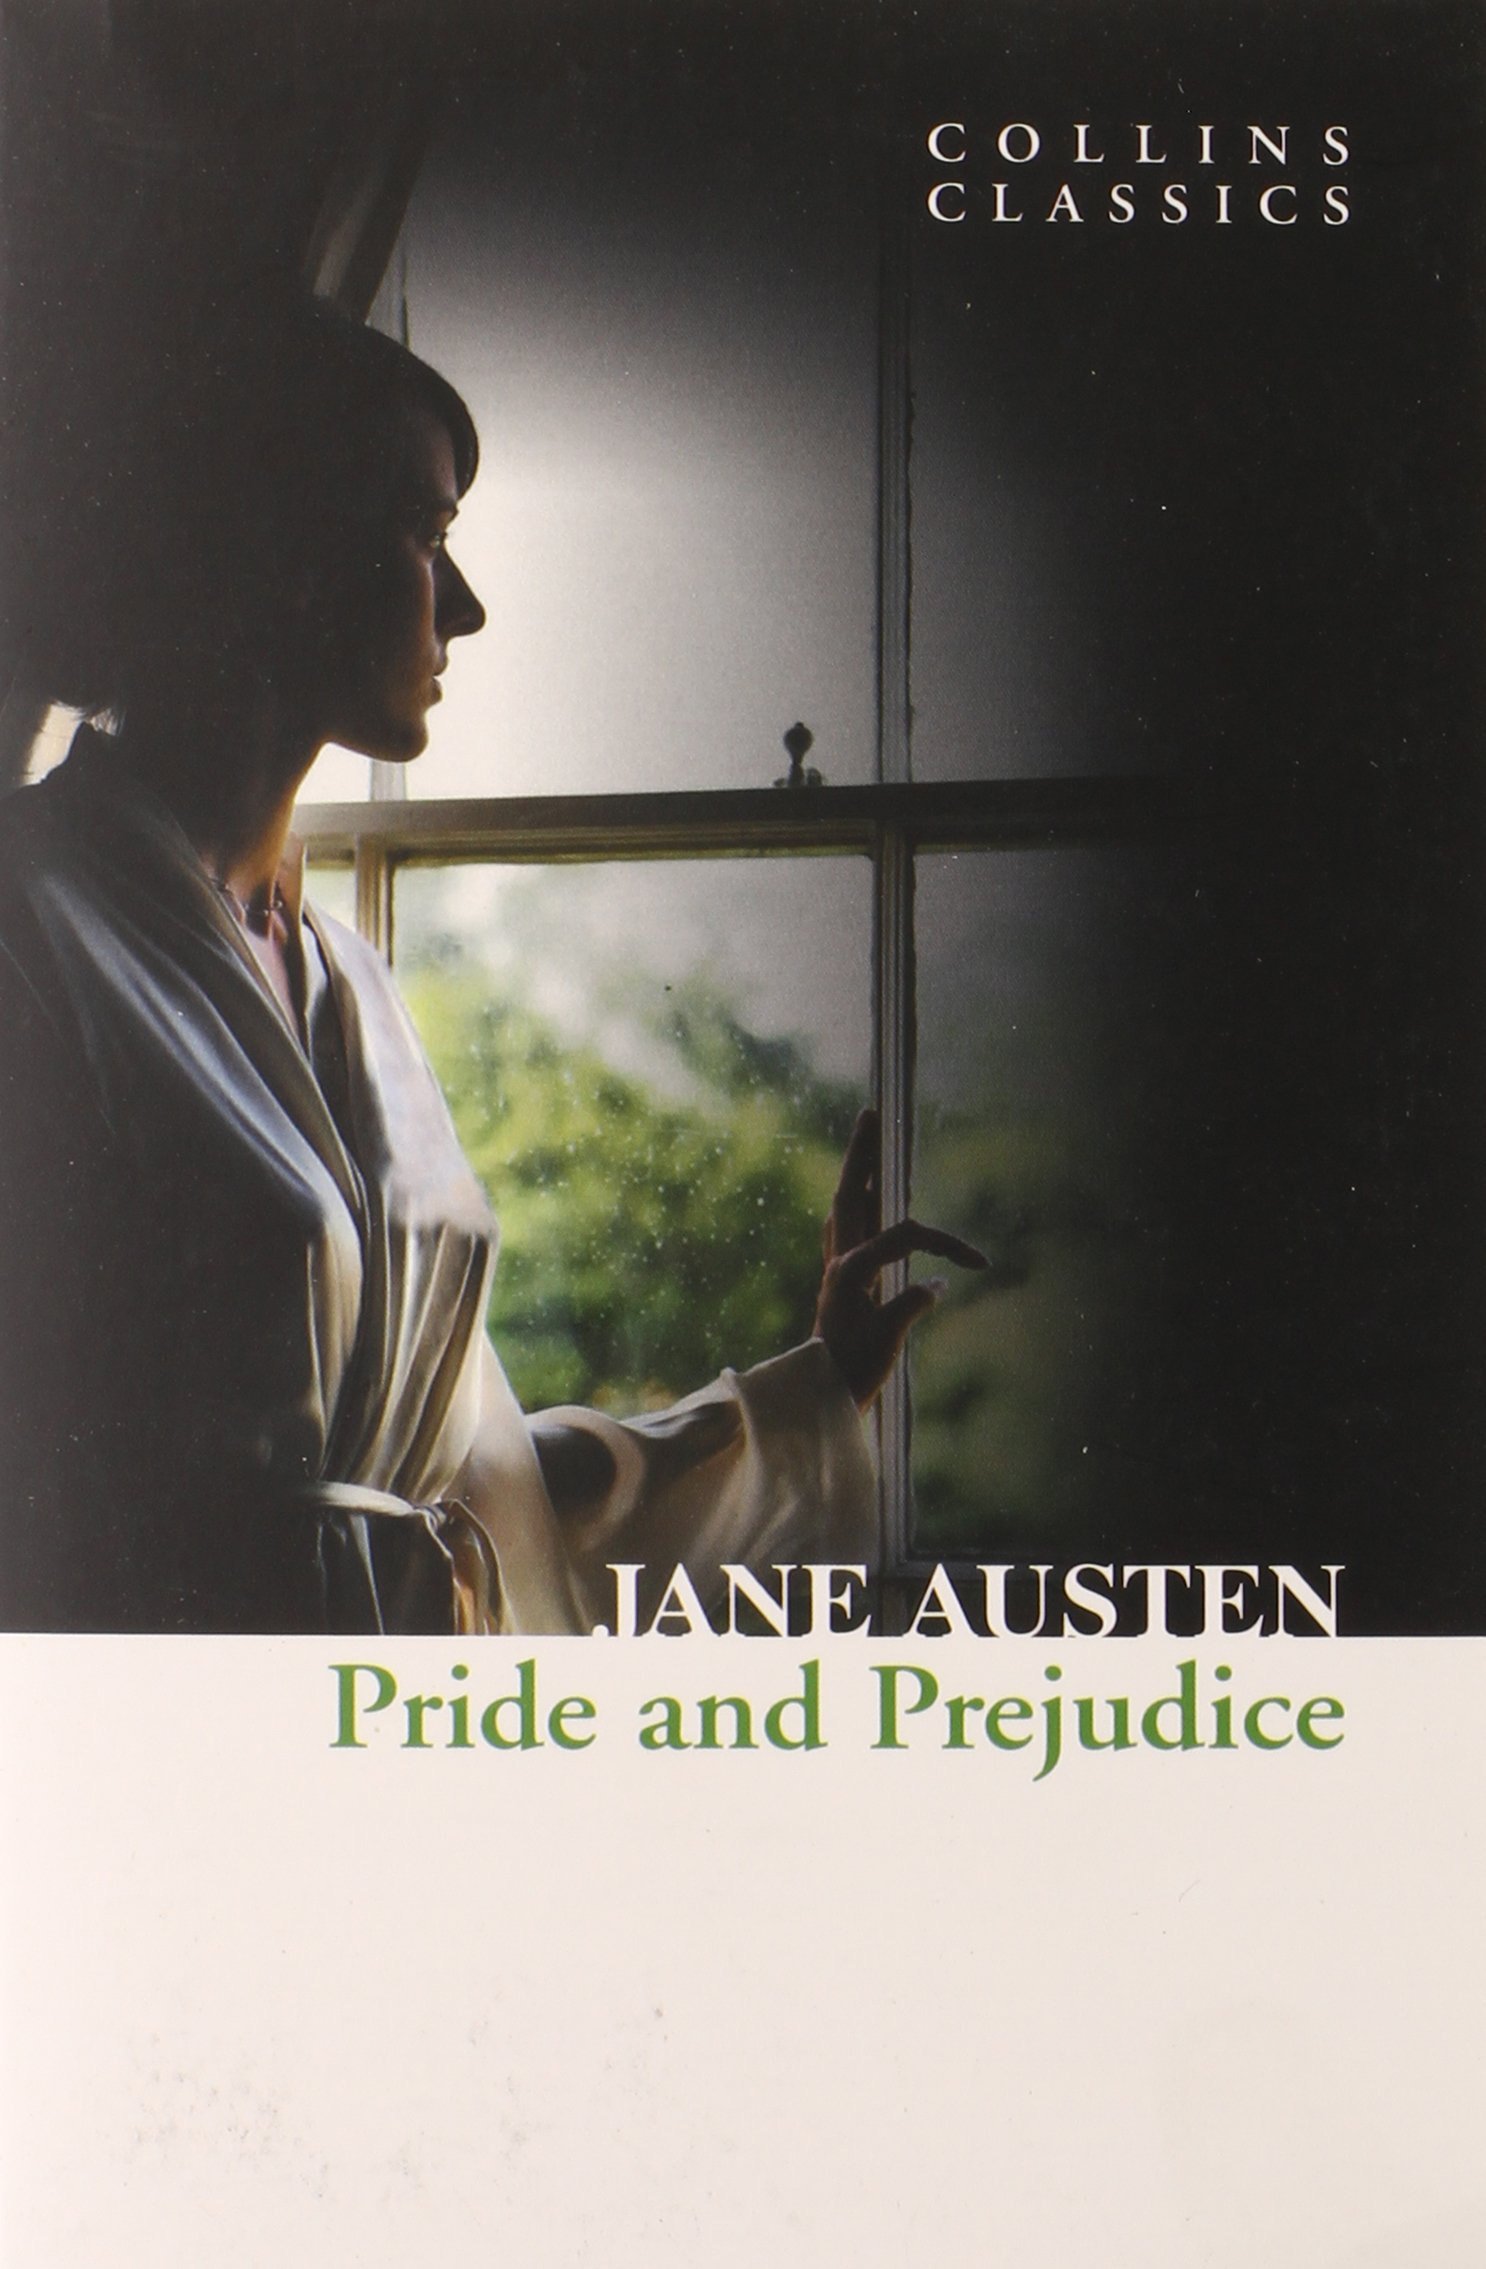 buy pride and prejudice collins classics book online at low buy pride and prejudice collins classics book online at low prices in pride and prejudice collins classics reviews ratings in